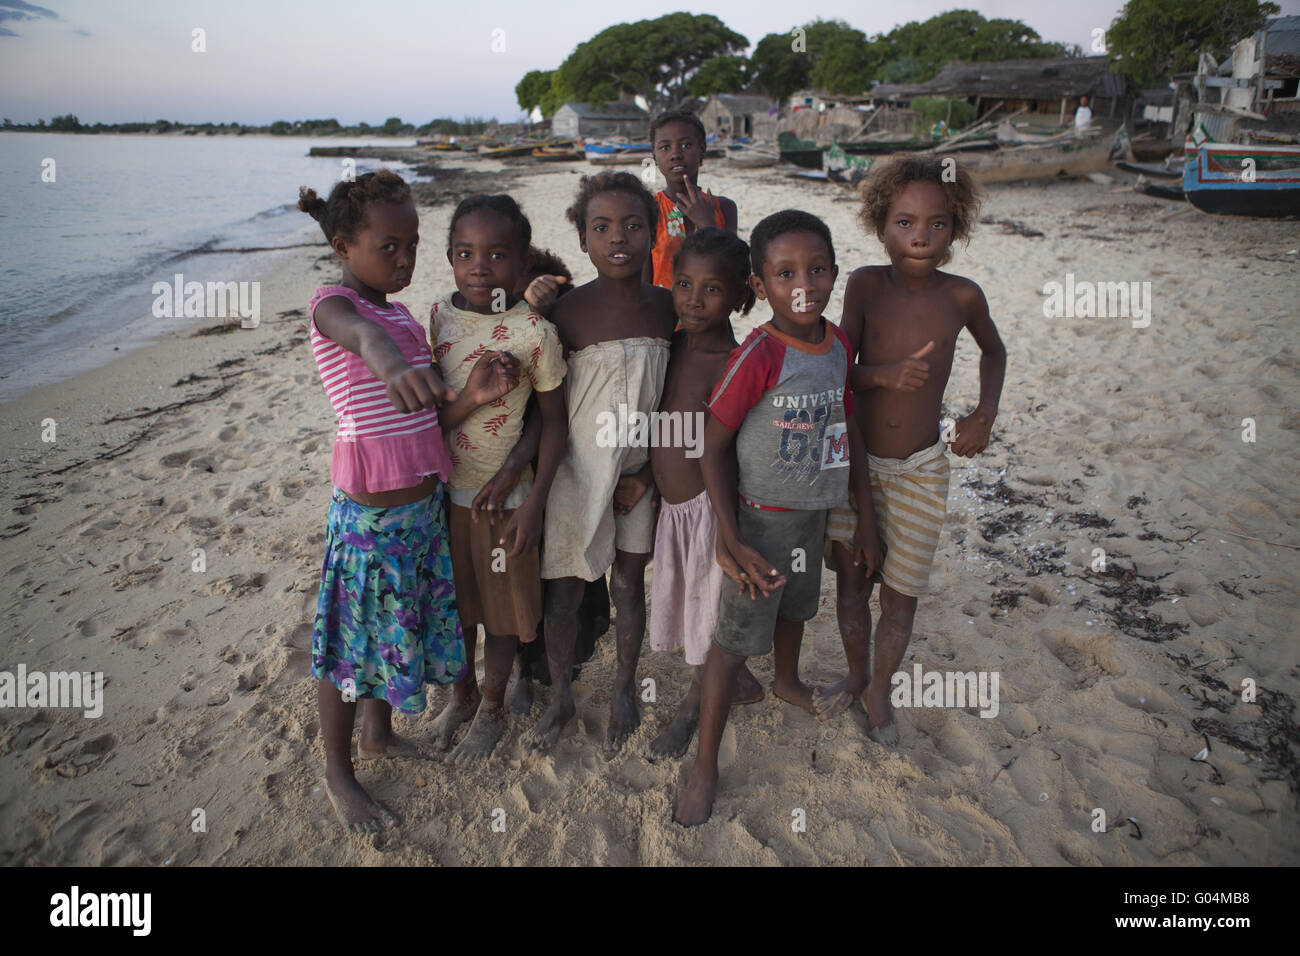 African children on the beach of Ifaty, Madagascar - Stock Image